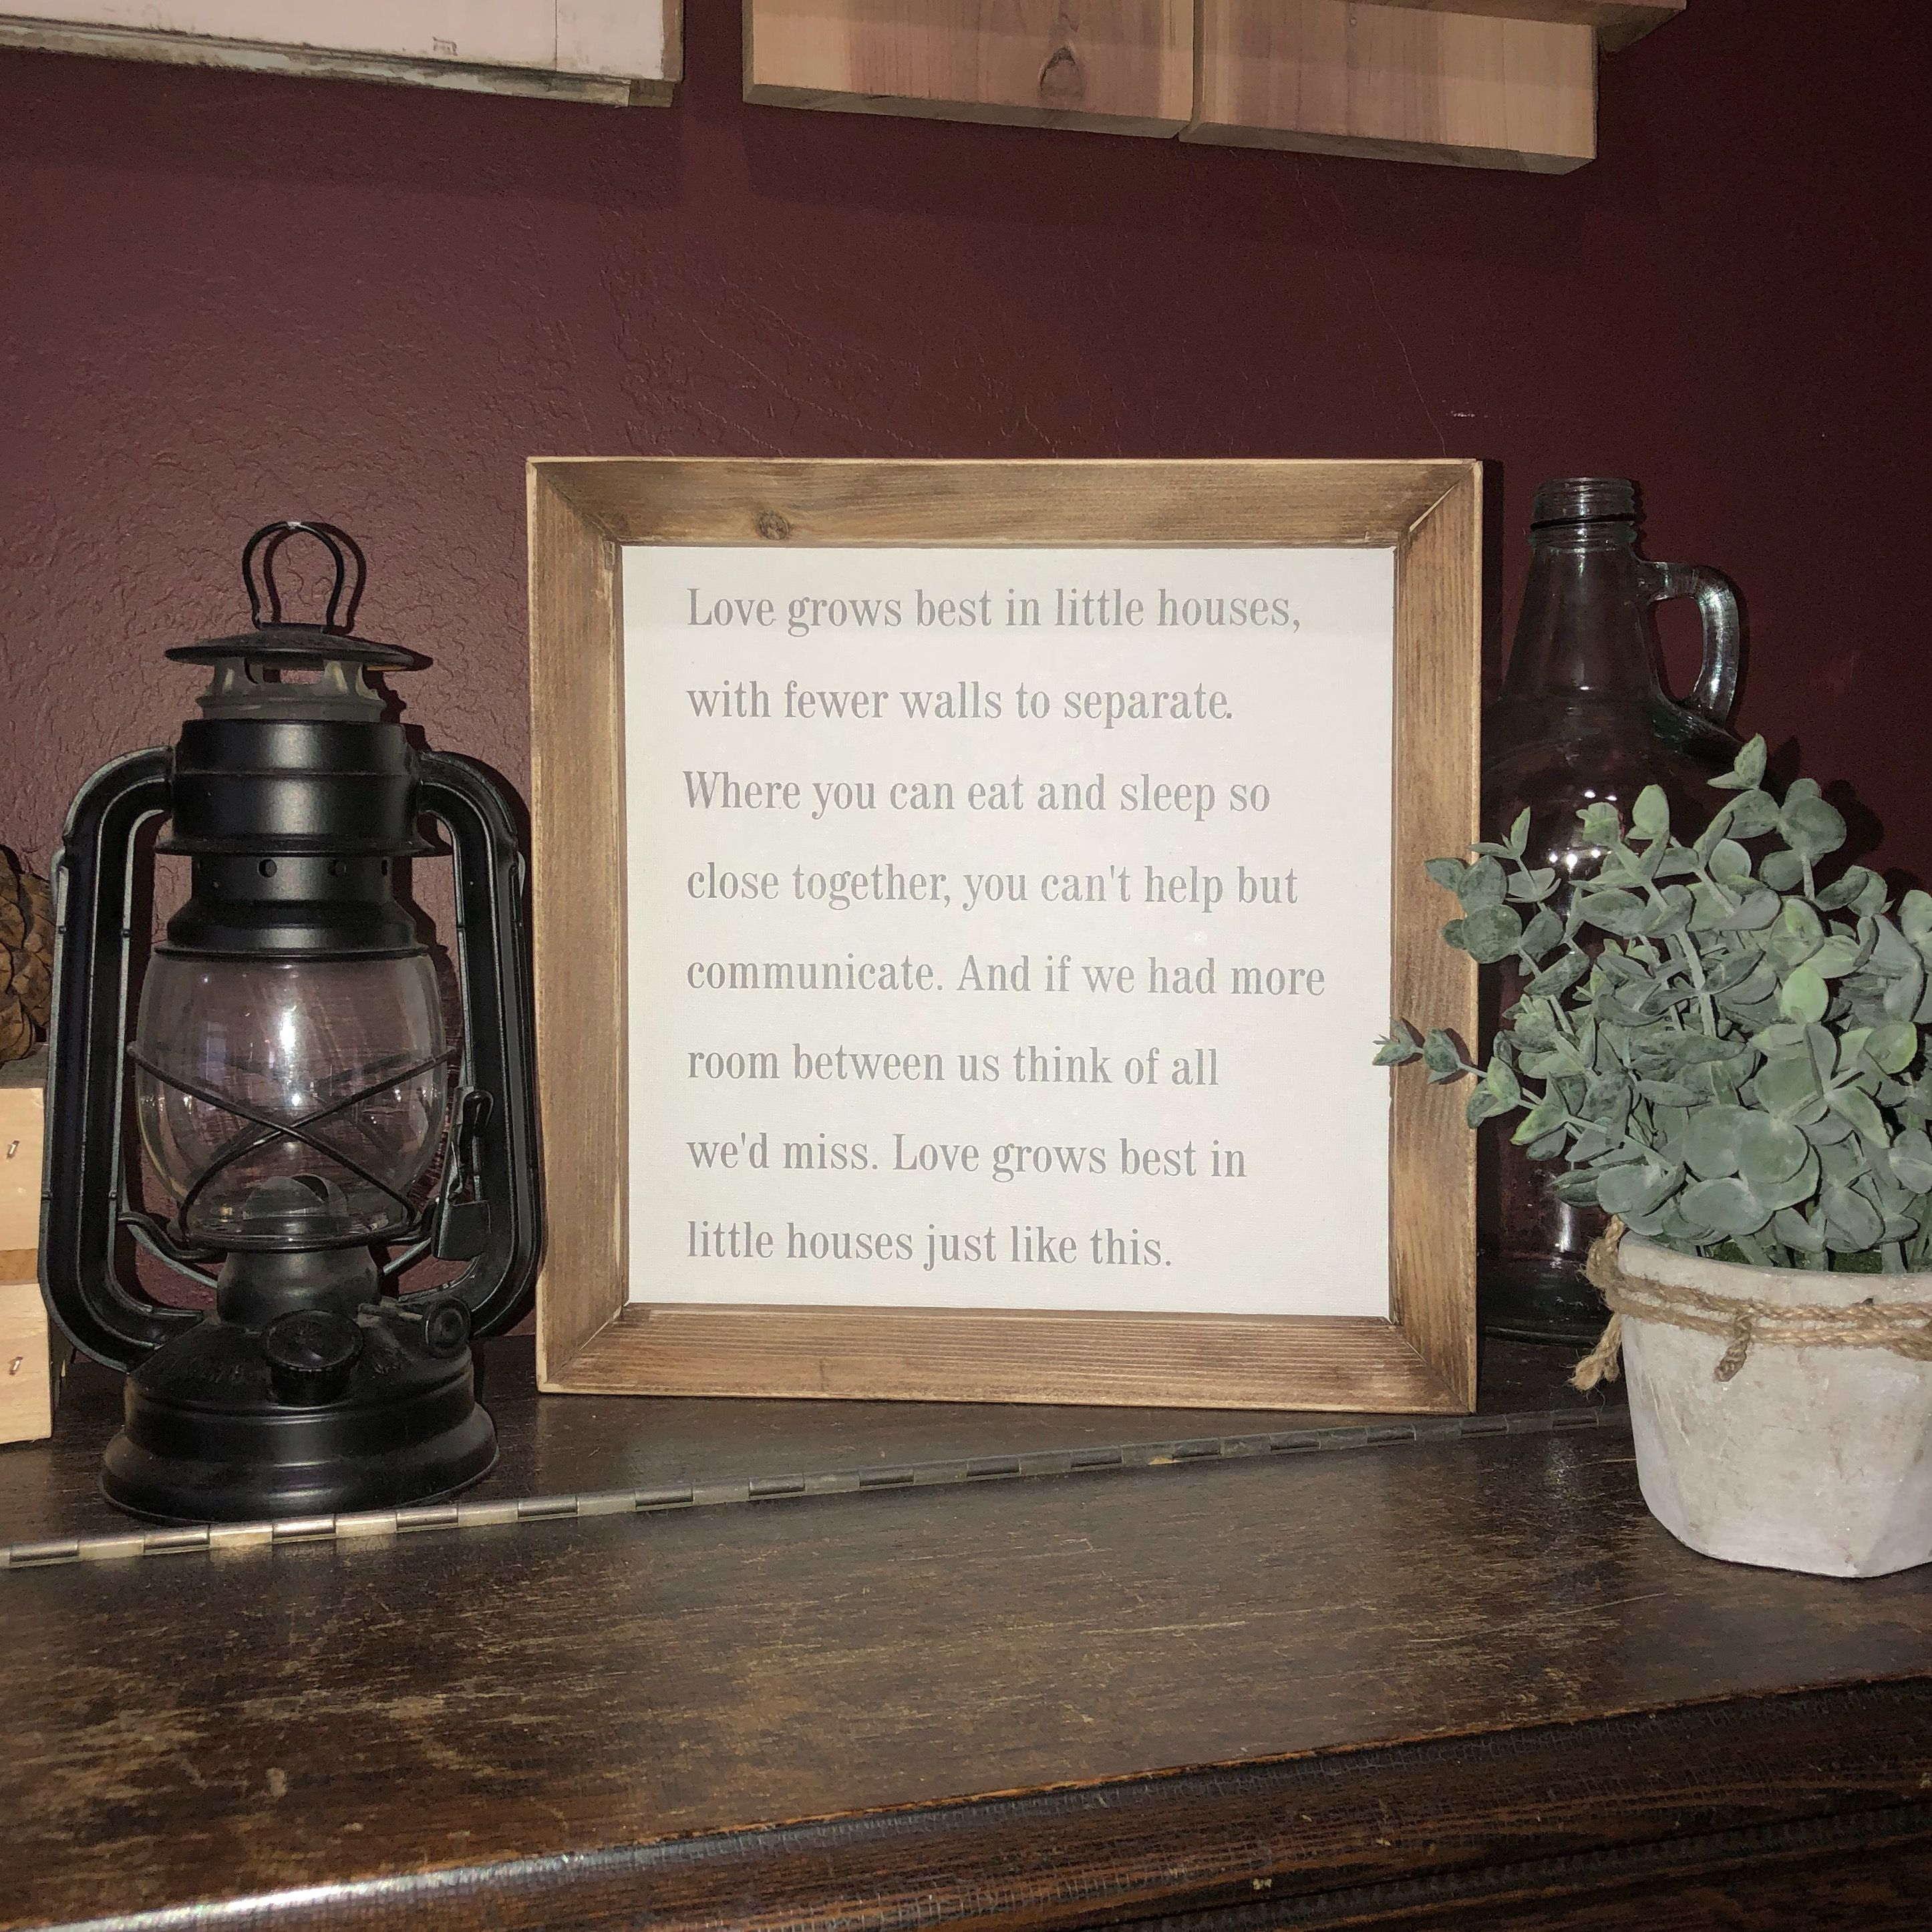 Download Love grows best in little houses just like this. Framed ...